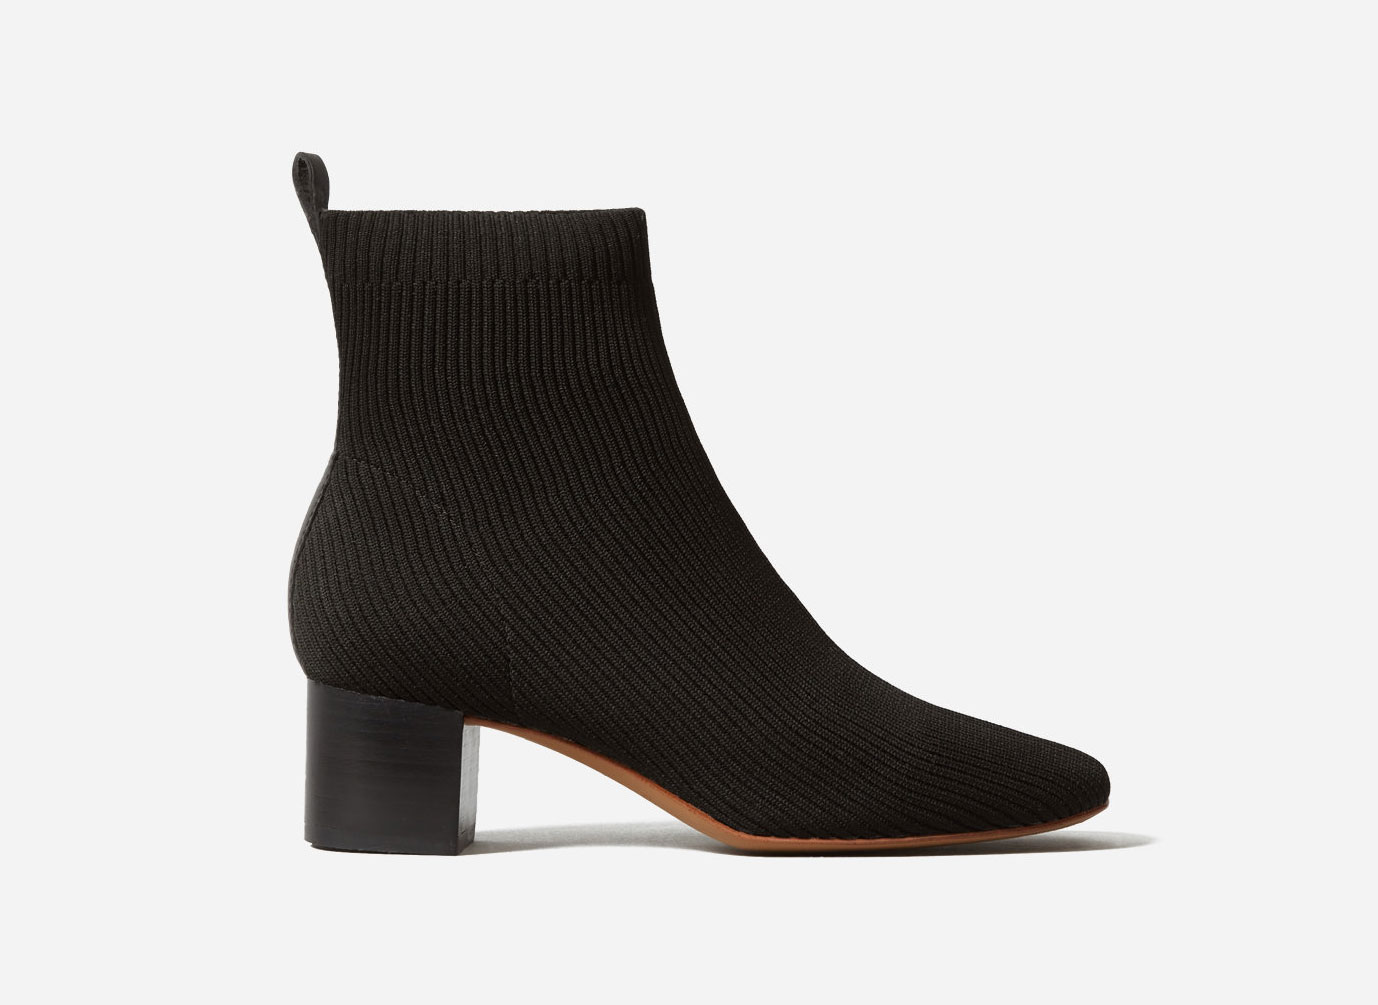 Everlane The Glove Boot ReKnit